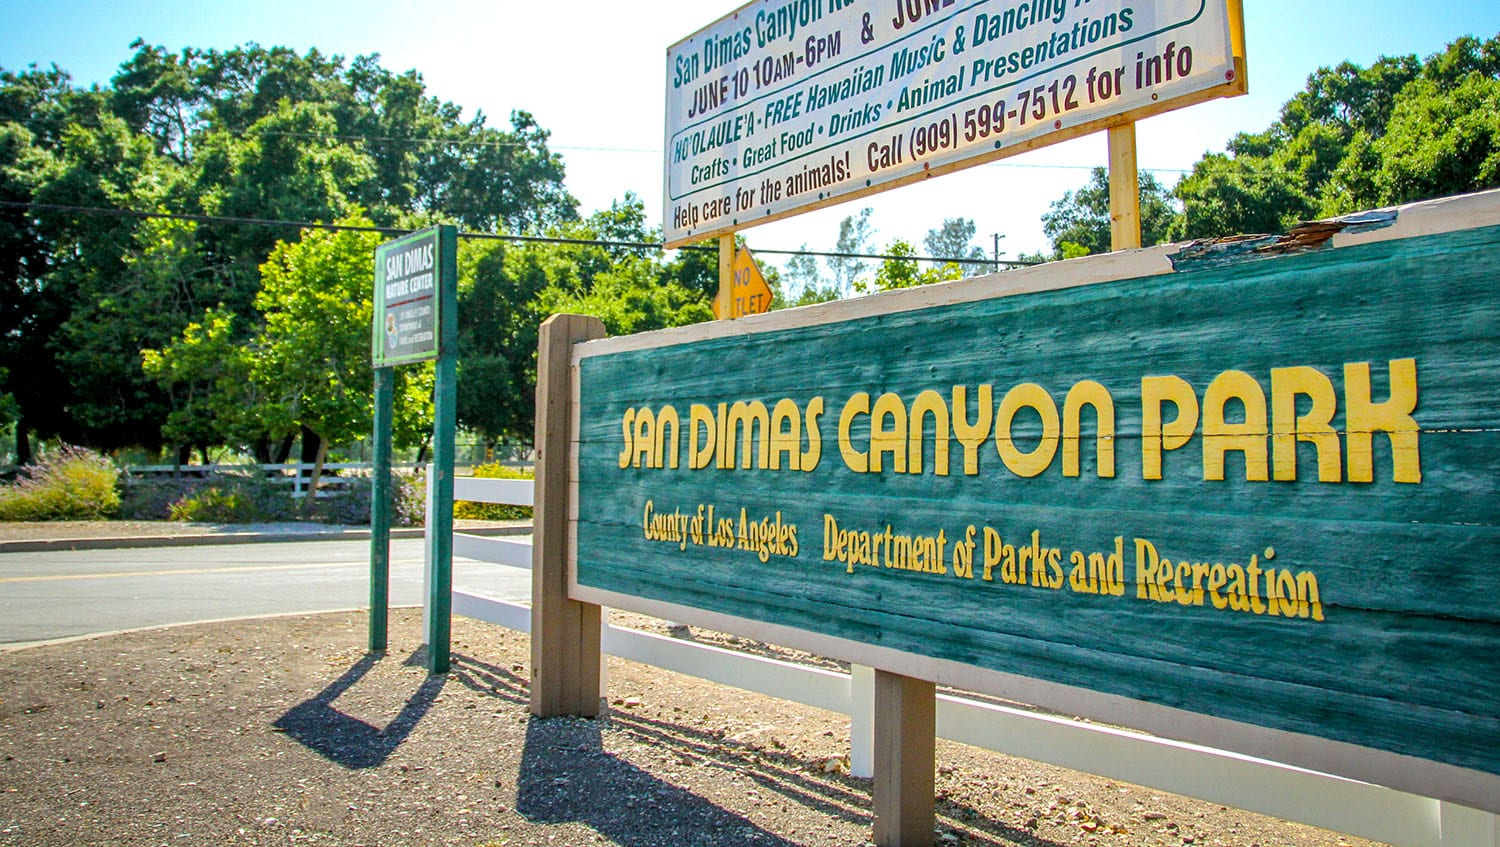 San Dimas Canyon Park sign